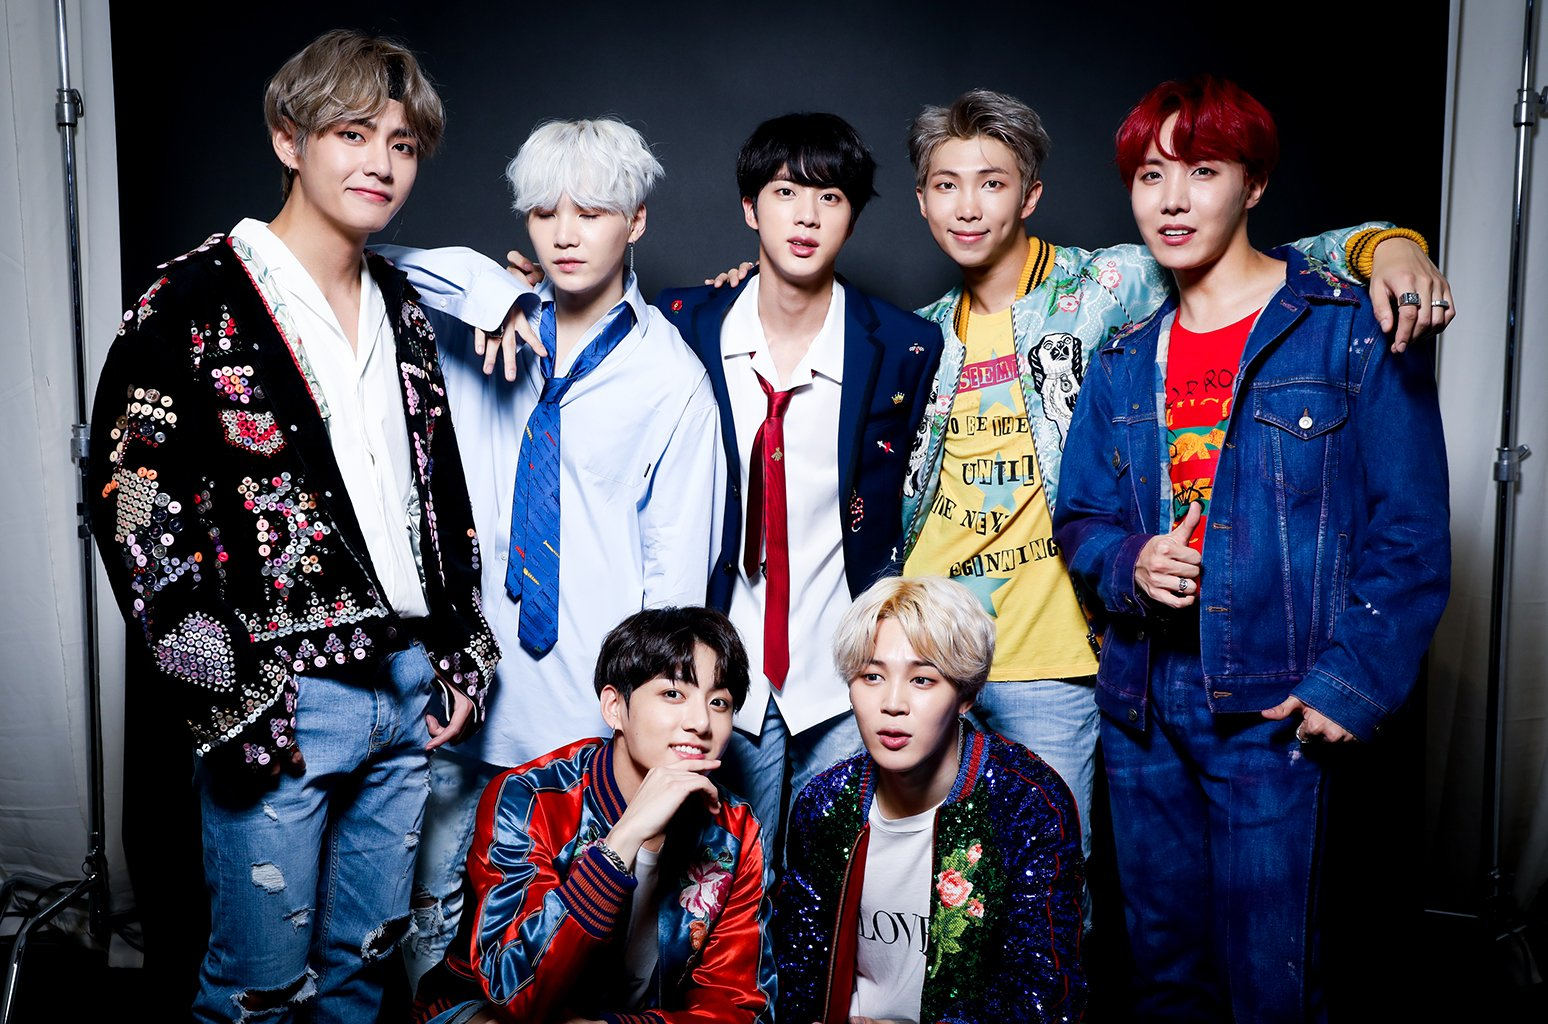 A full timeline of BTS in America https://t.co/Xly4PSeYuC https://t.co/fem9Sh7jDT